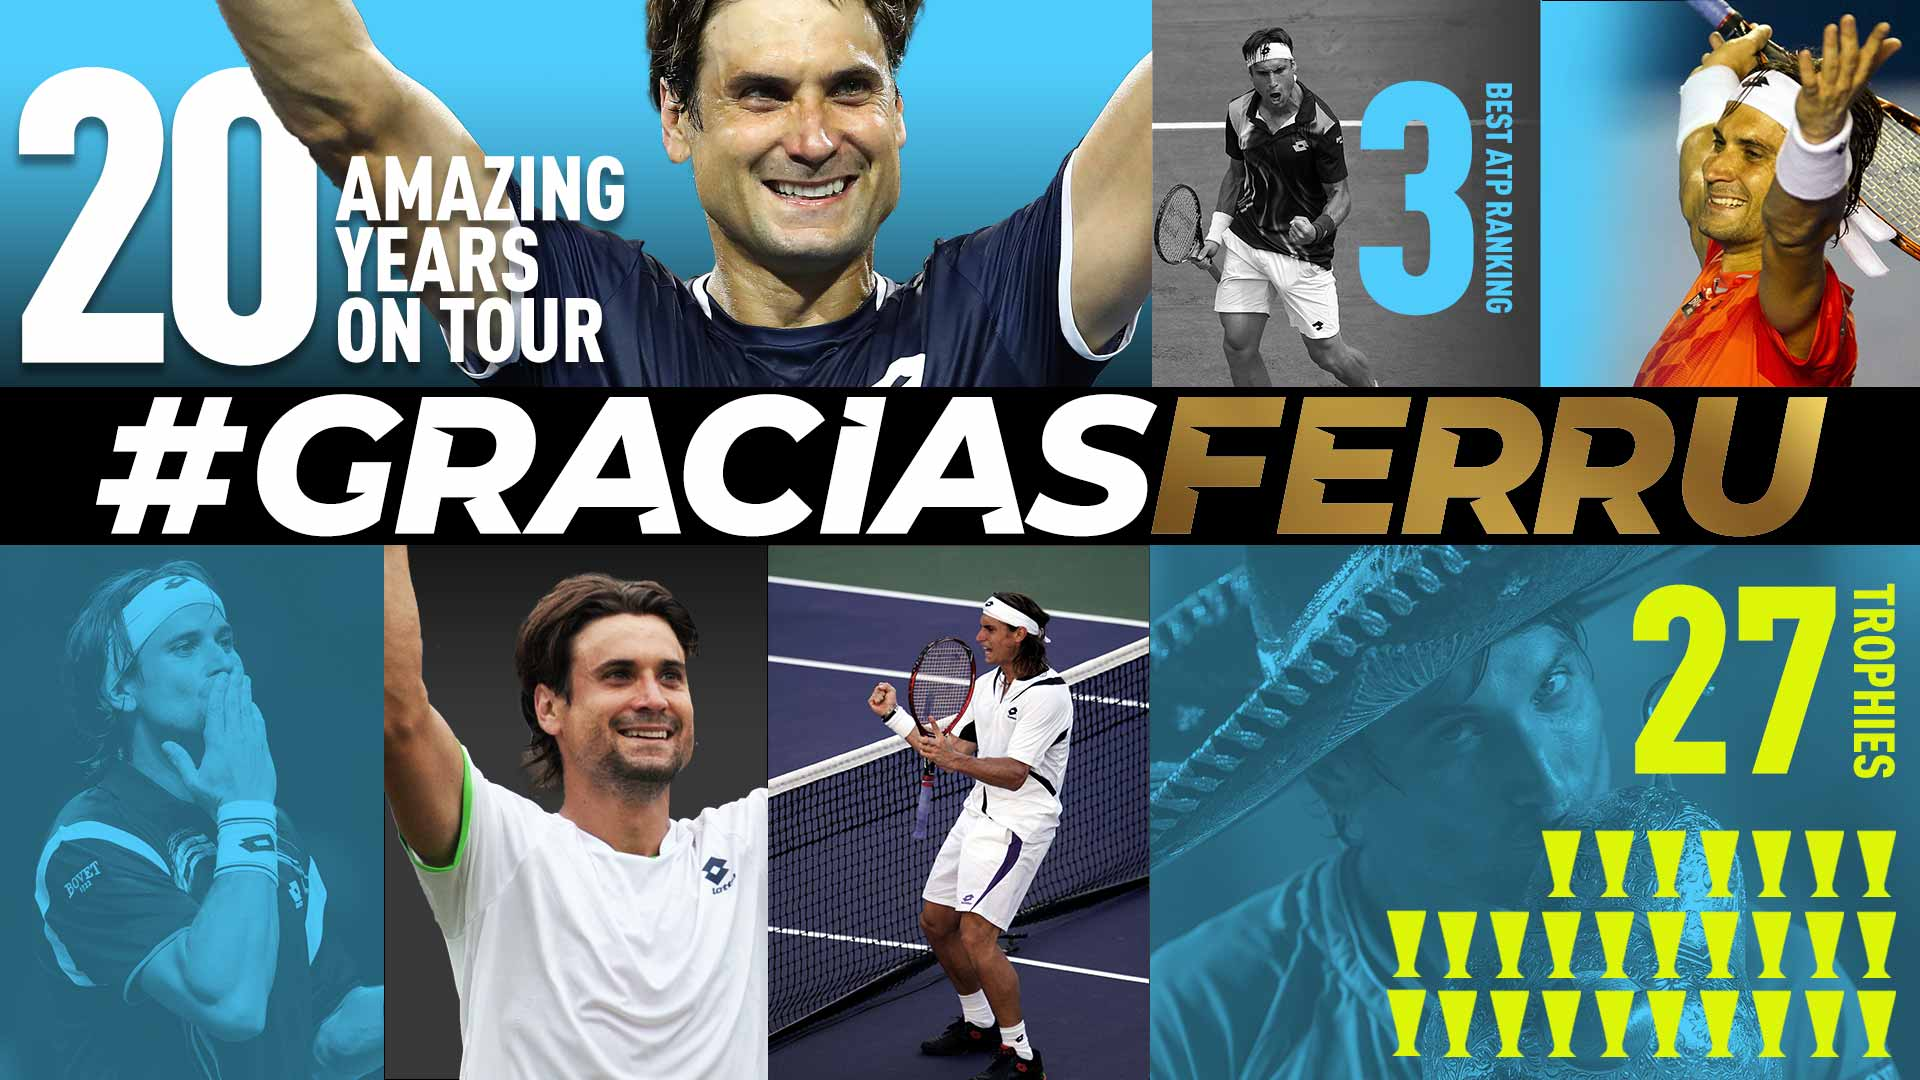 David Ferrer won 27 titles during 20 years on the ATP Tour